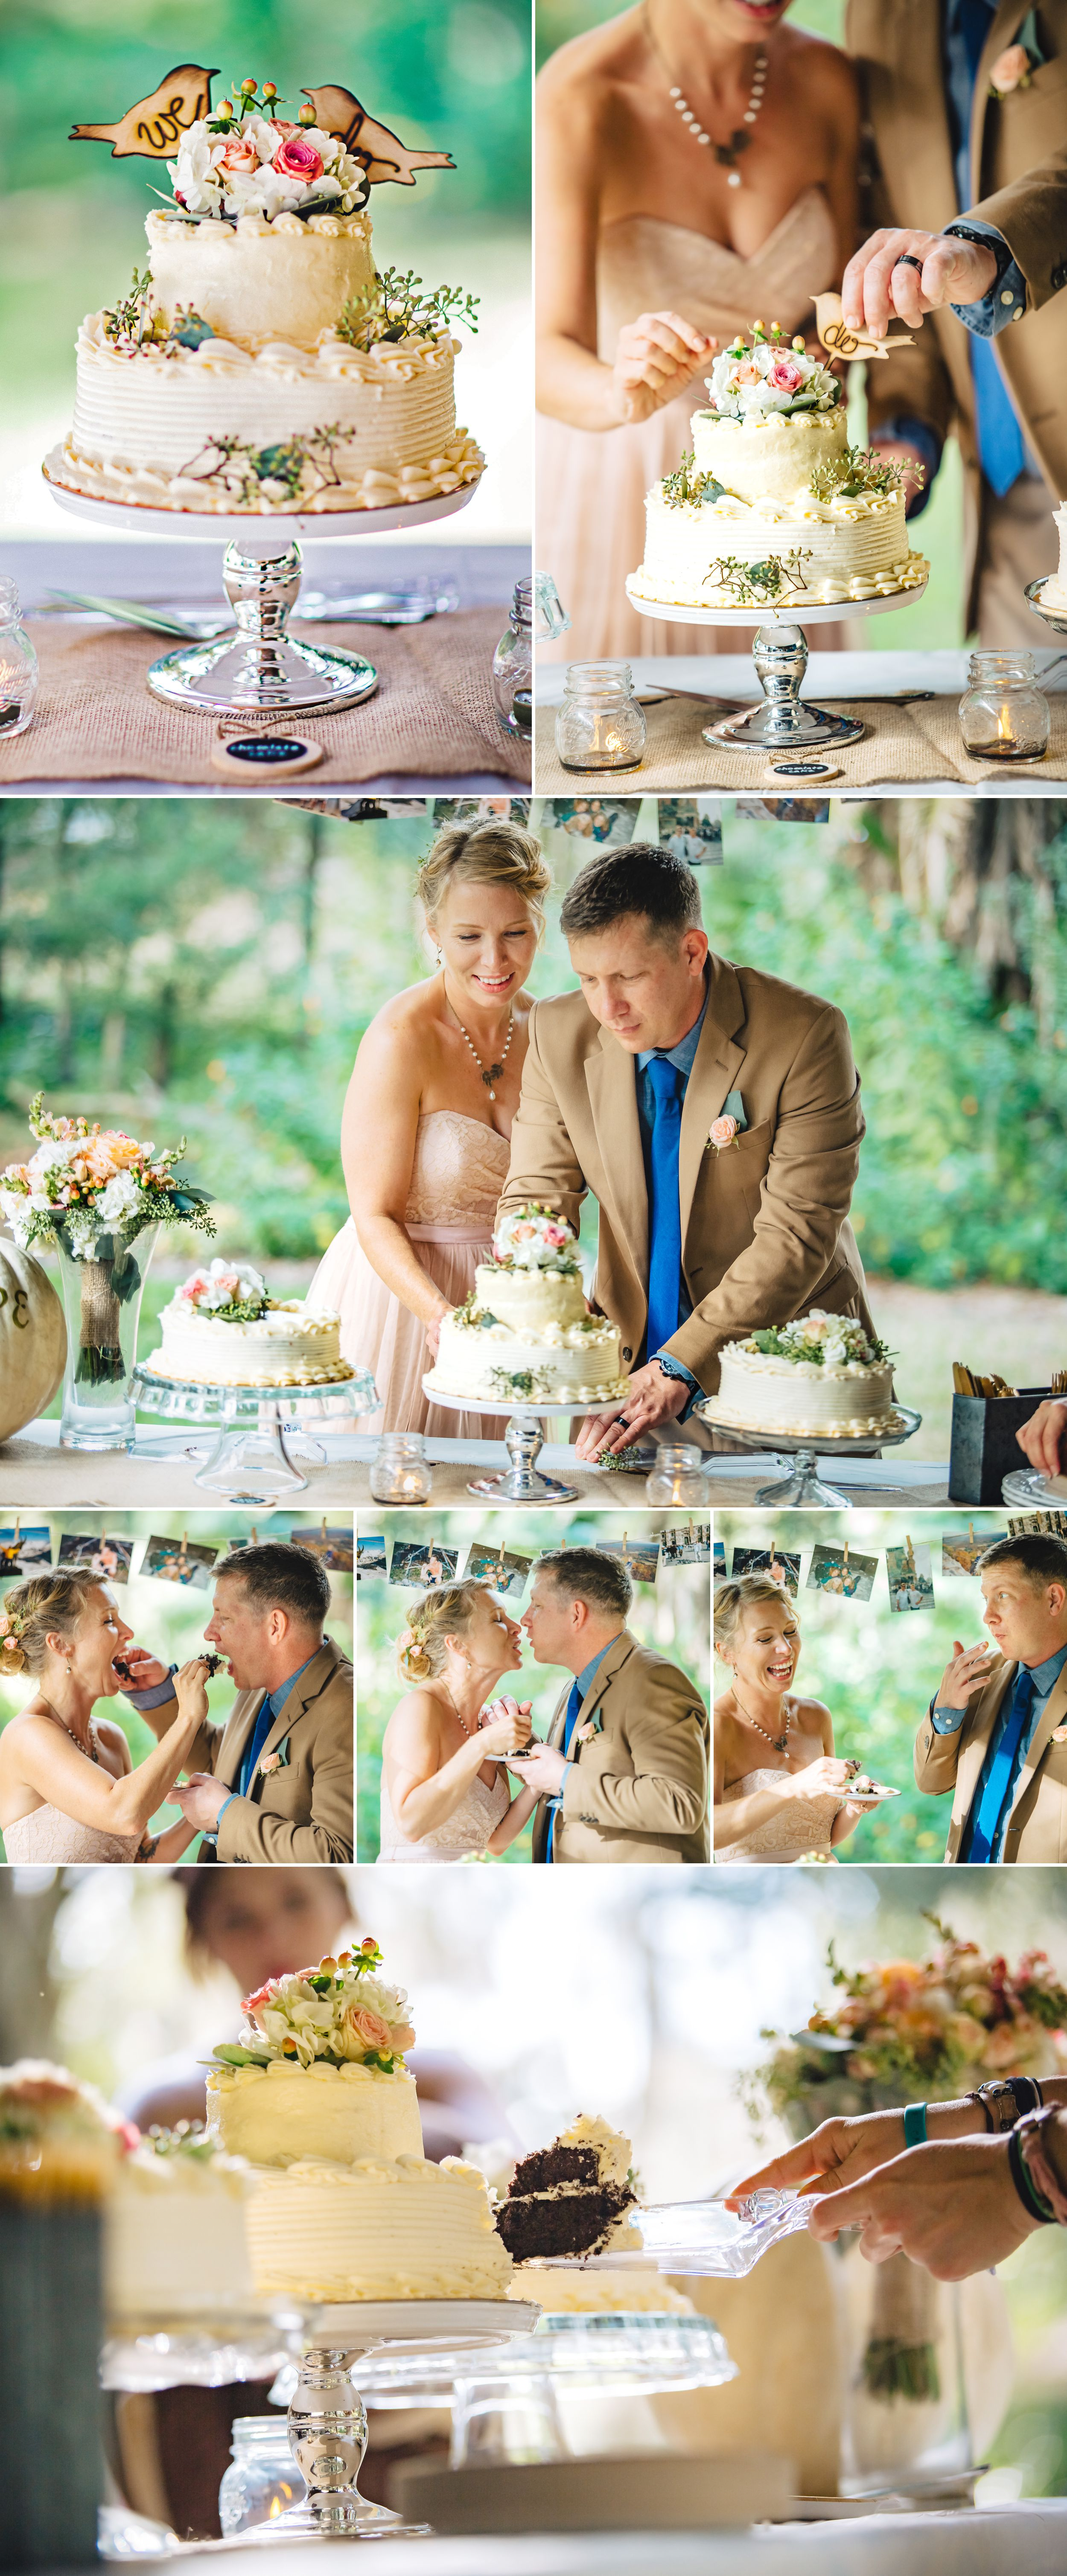 Outdoor Wedding Cake Cutting Photography Langford Park Orlando.jpg